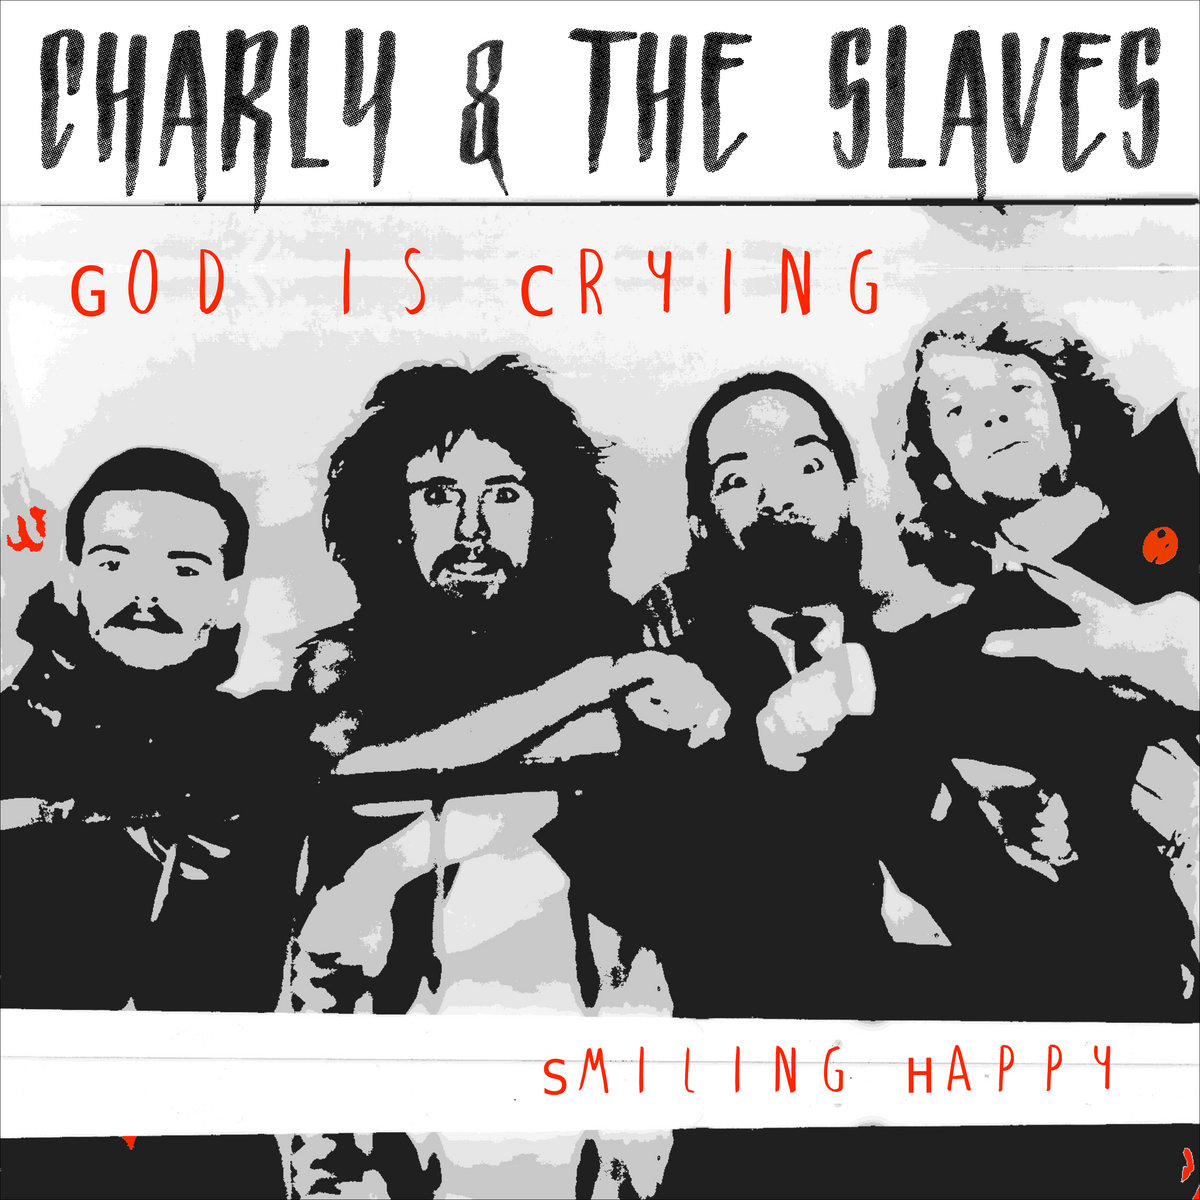 Charly & the slaves